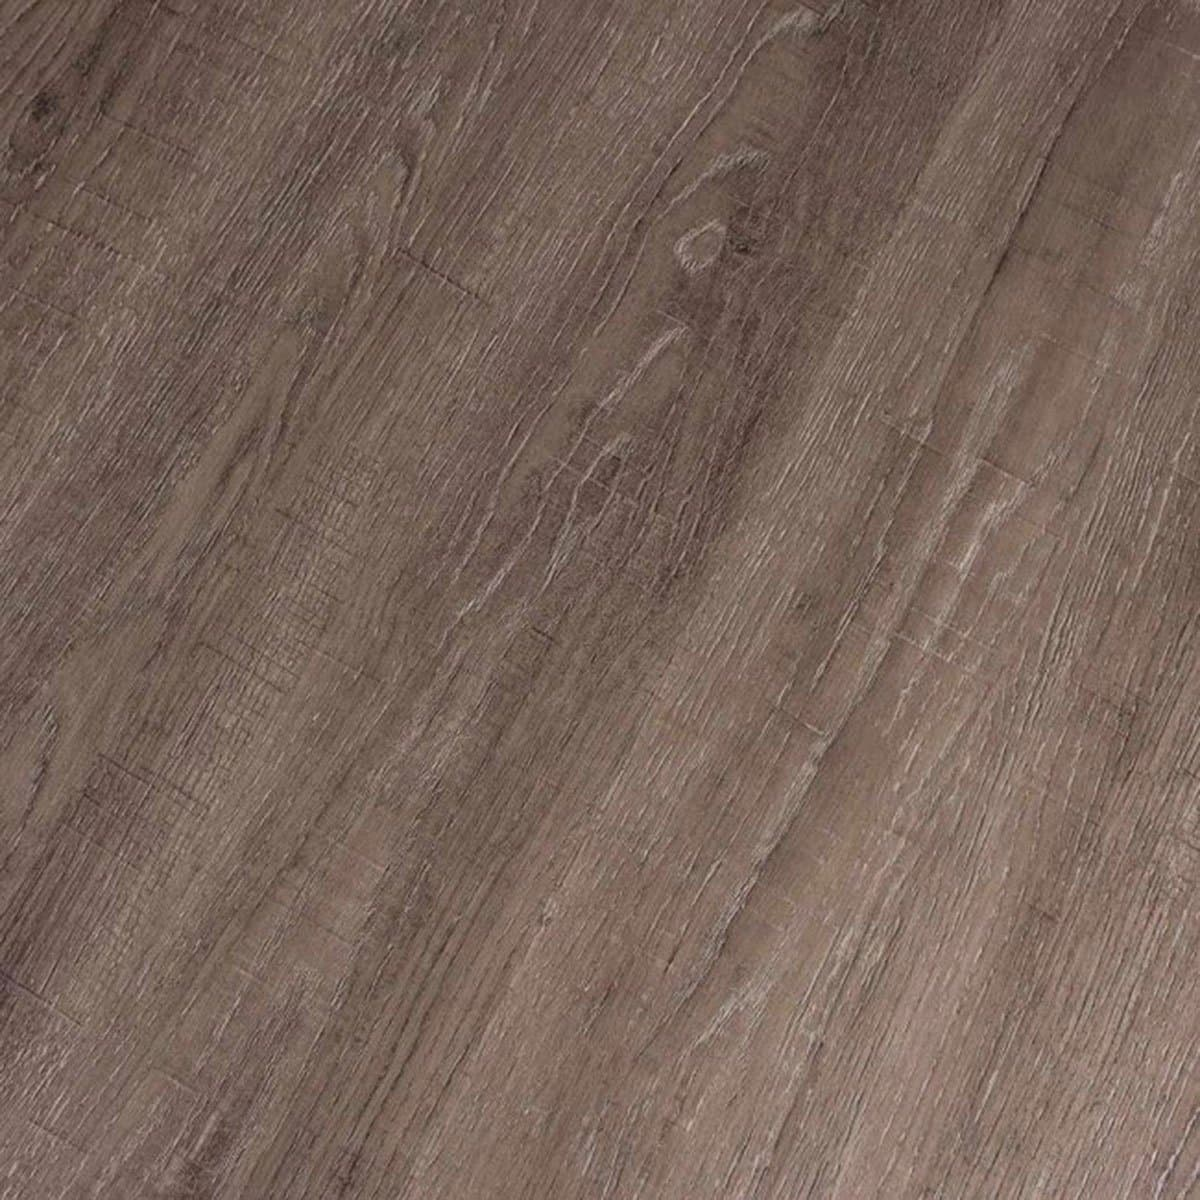 within home of floor legend samples room best living looks look flooring decorating kent full countertop carpet tile plank size wood bathroom quality like vinyl acacia voc laminate waterproof that